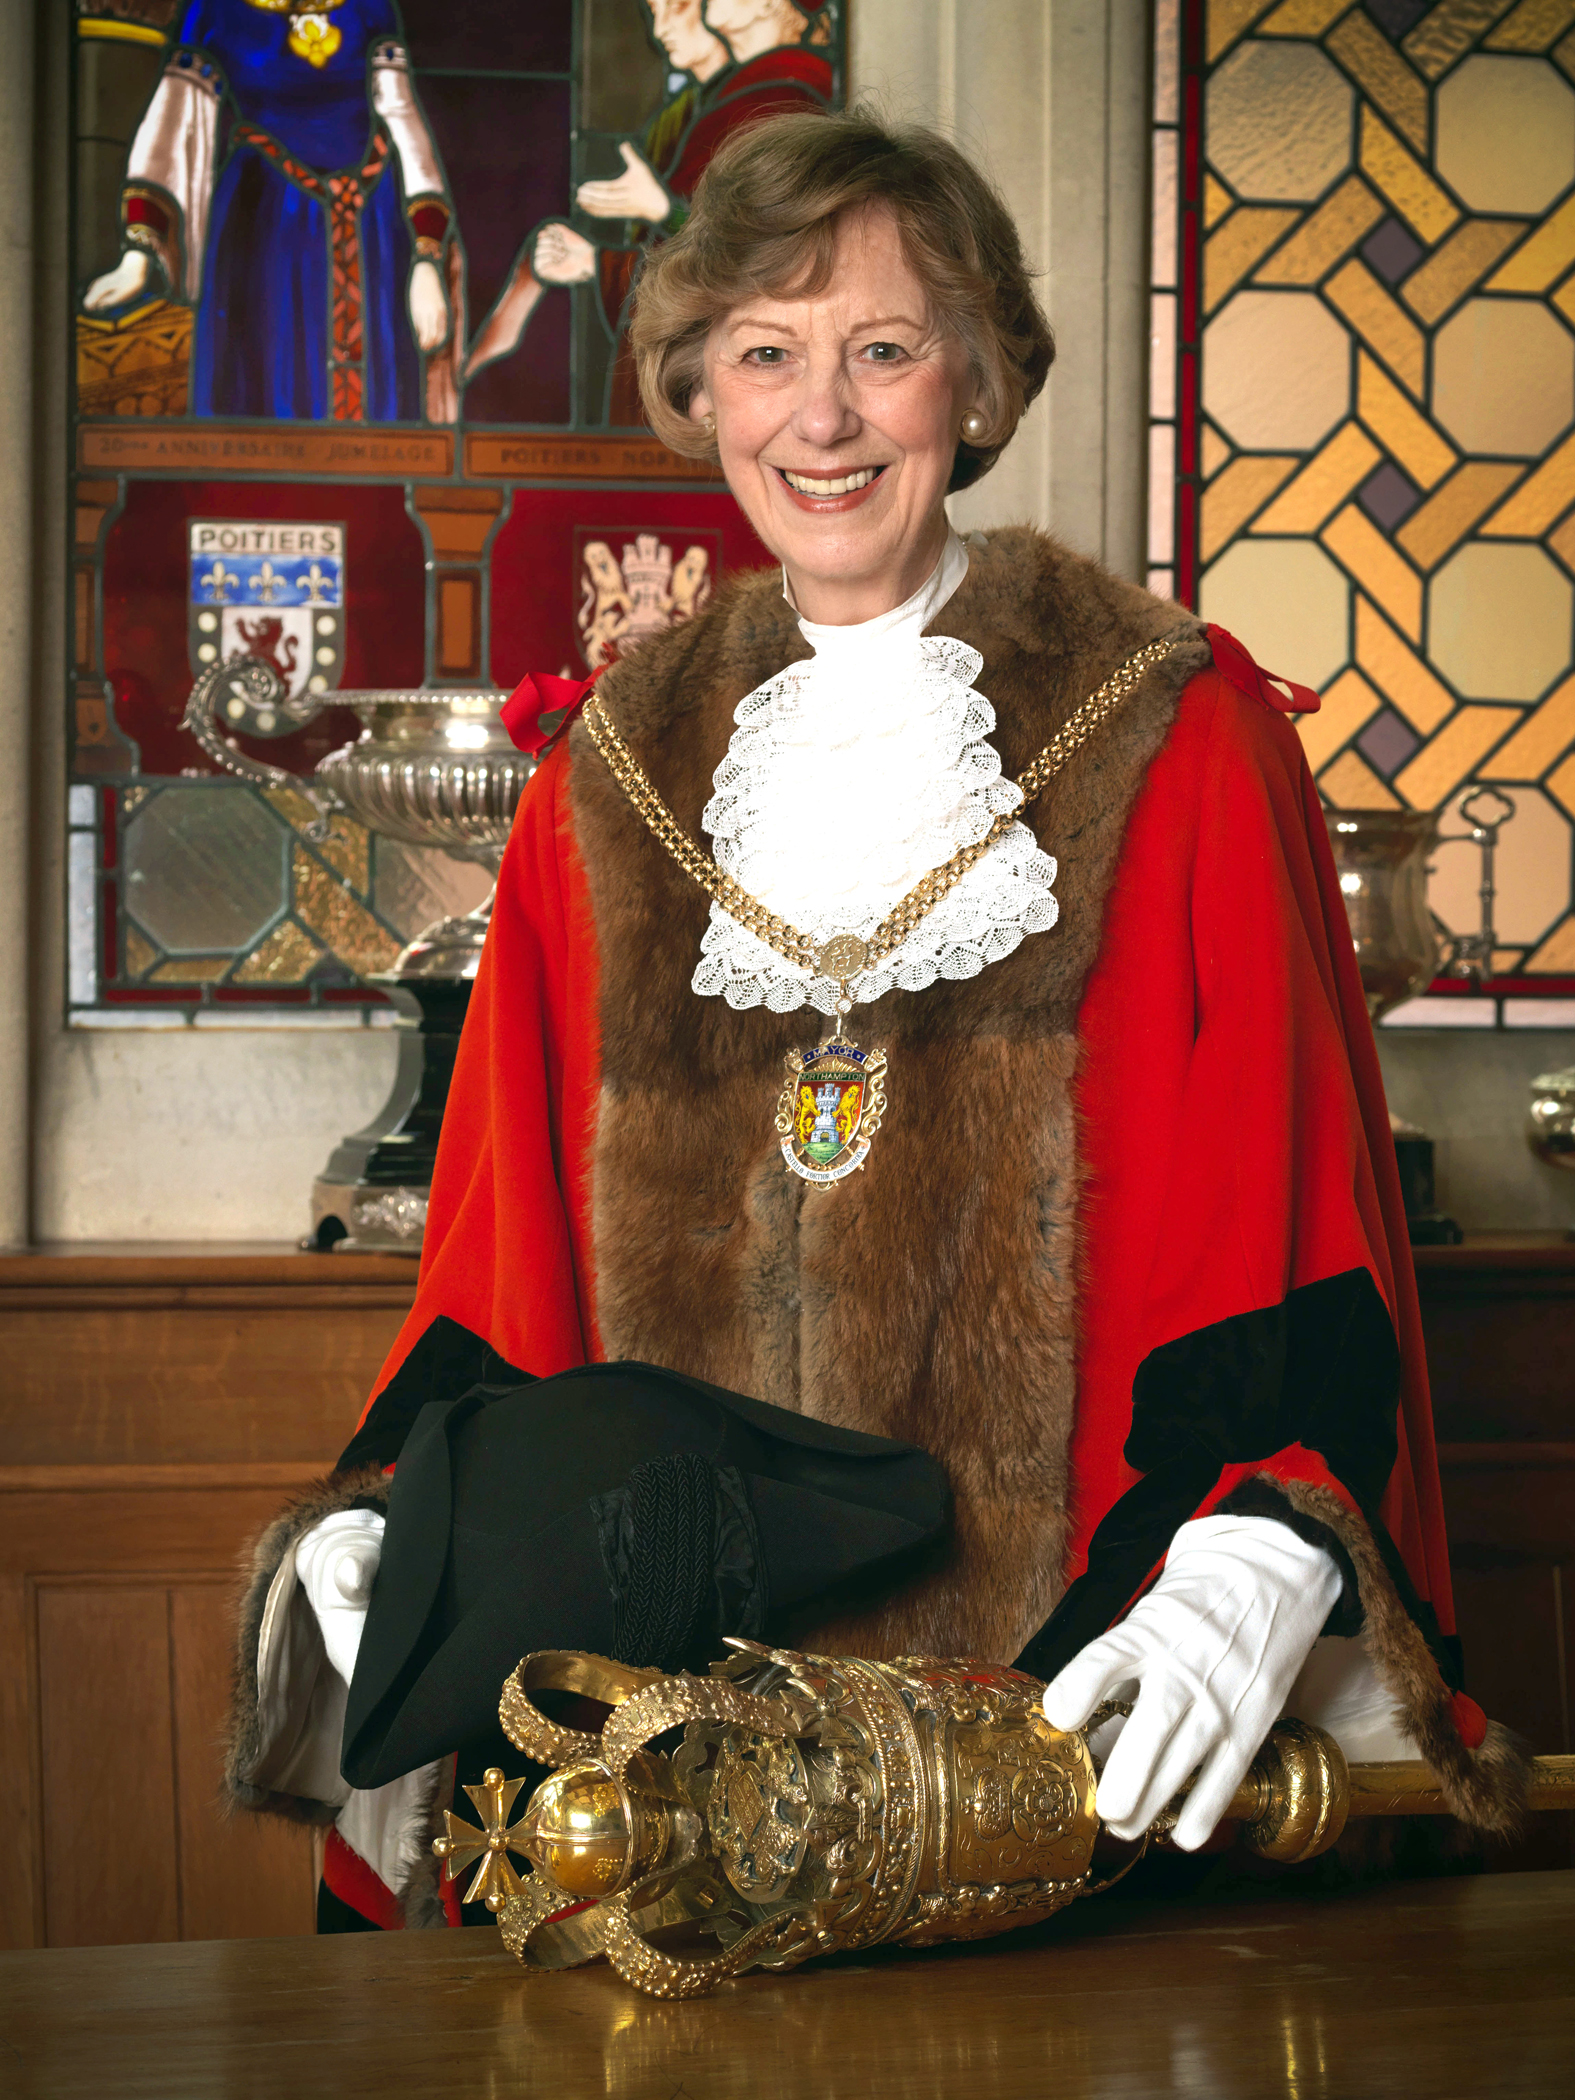 Cllr Penelope Flavell, the new Mayor of Northampton